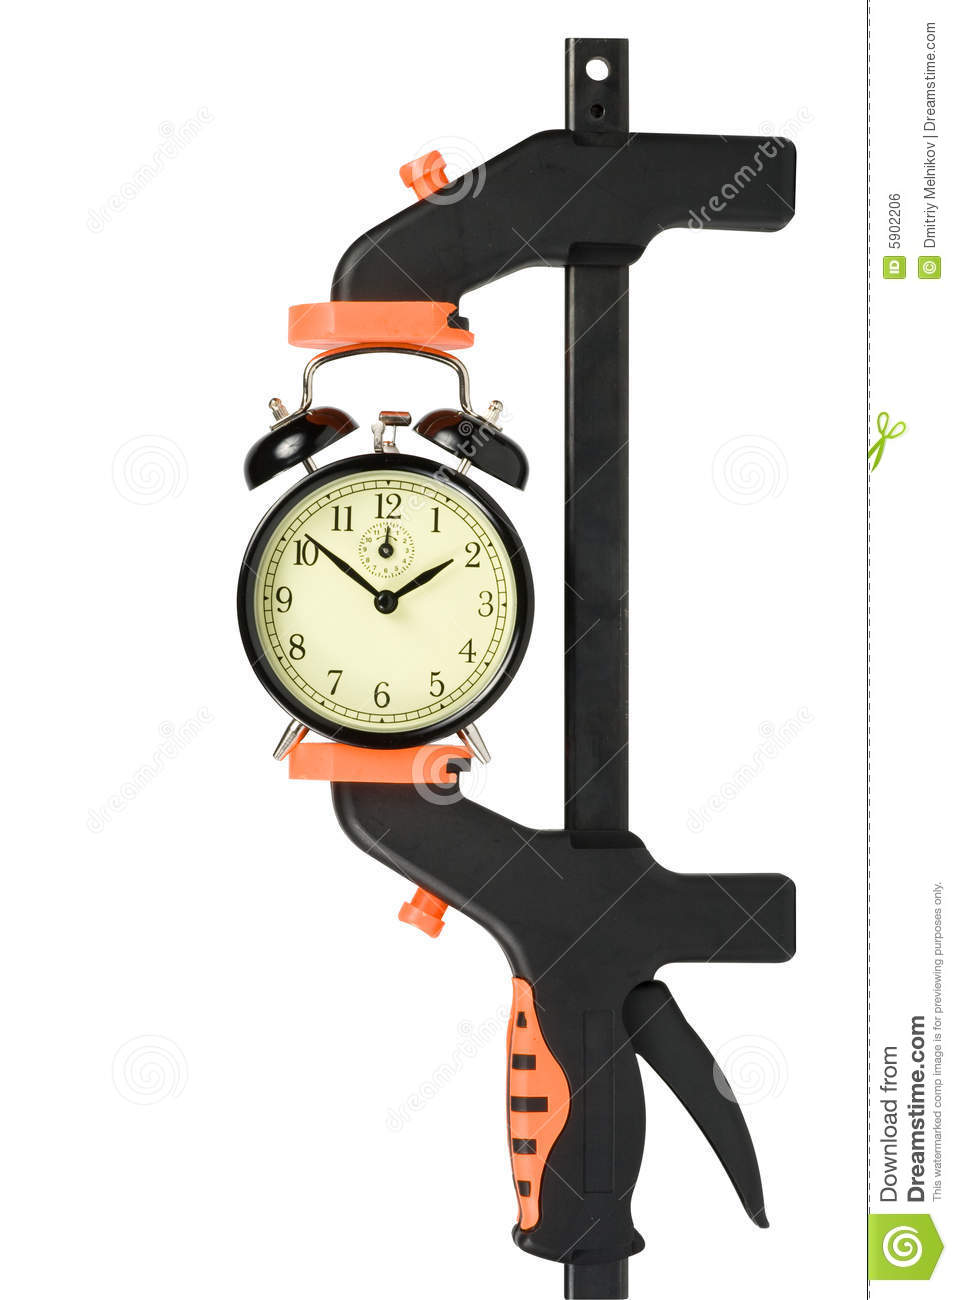 Alarm Clock Clamped In A Manual Clamp Royalty Free Stock Image.